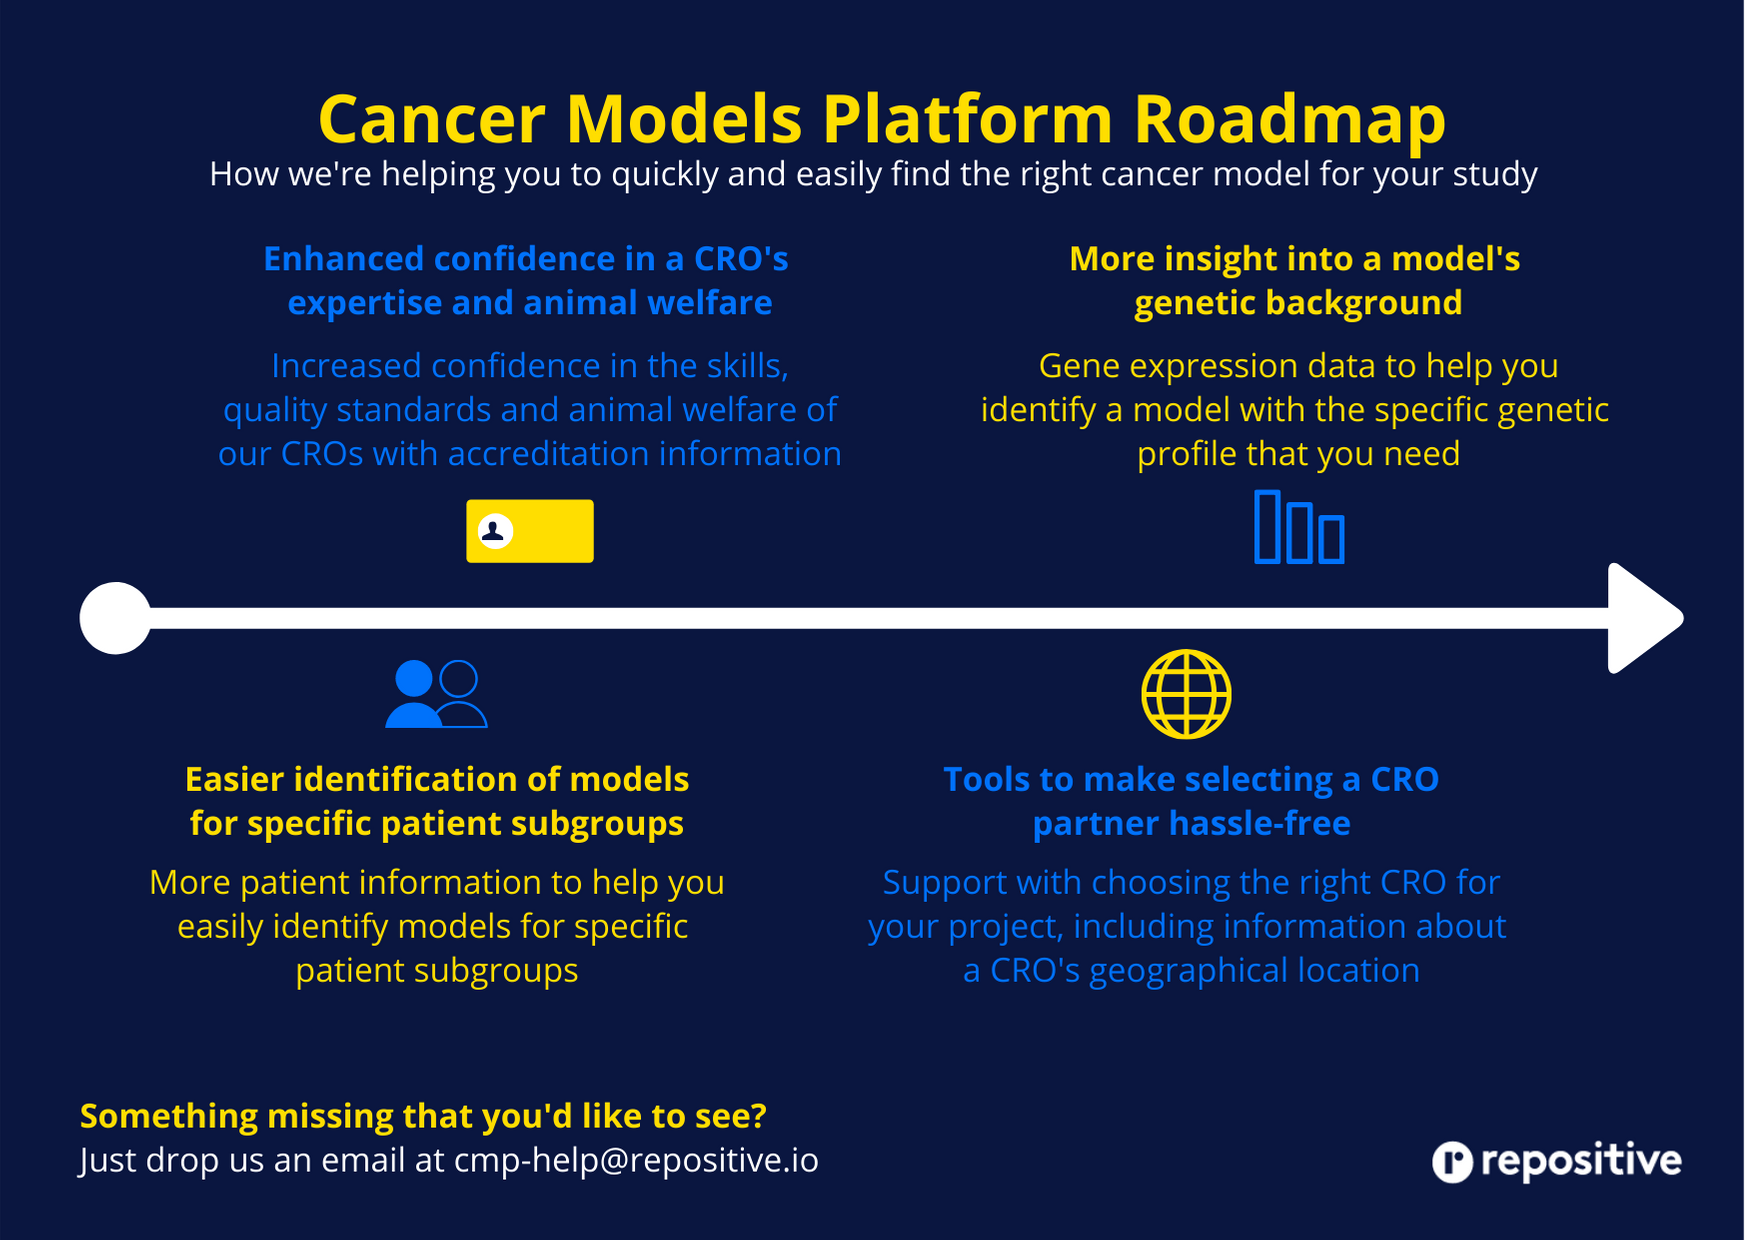 Repositive Cancer Models Platform Roadmap graphic